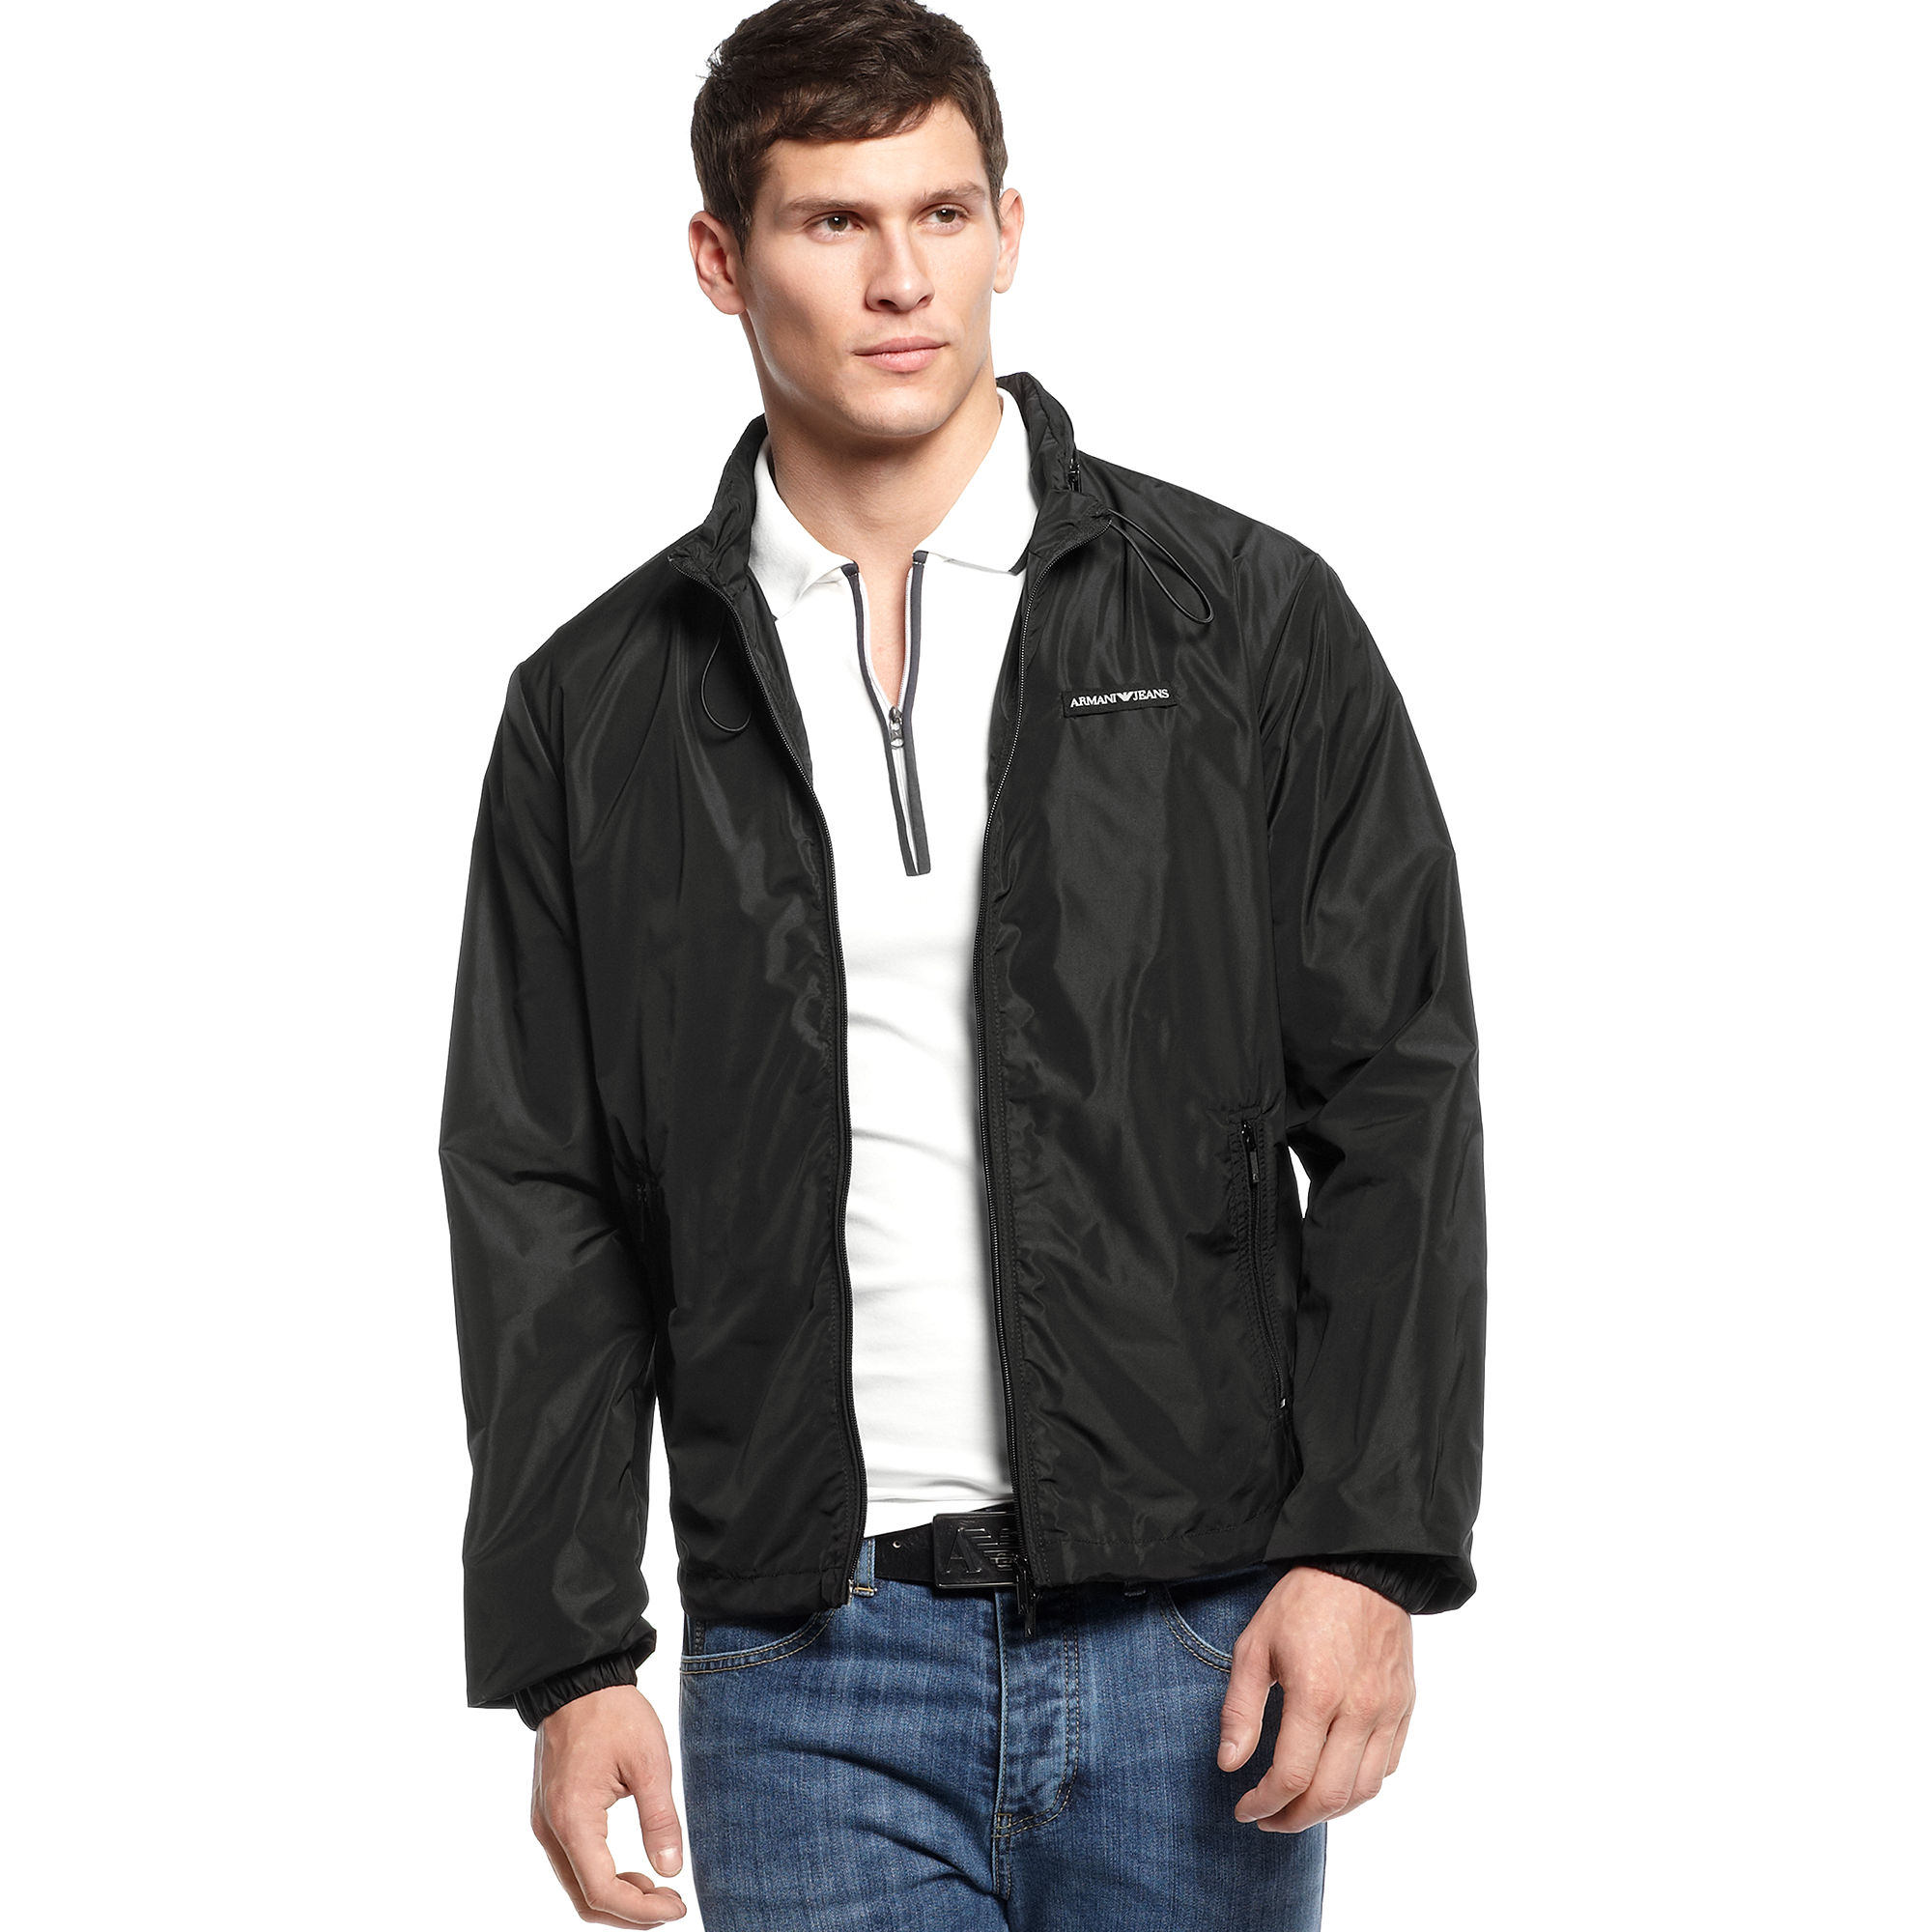 Armani jeans Lightweight Nylon Windbreaker Jacket in Black for Men